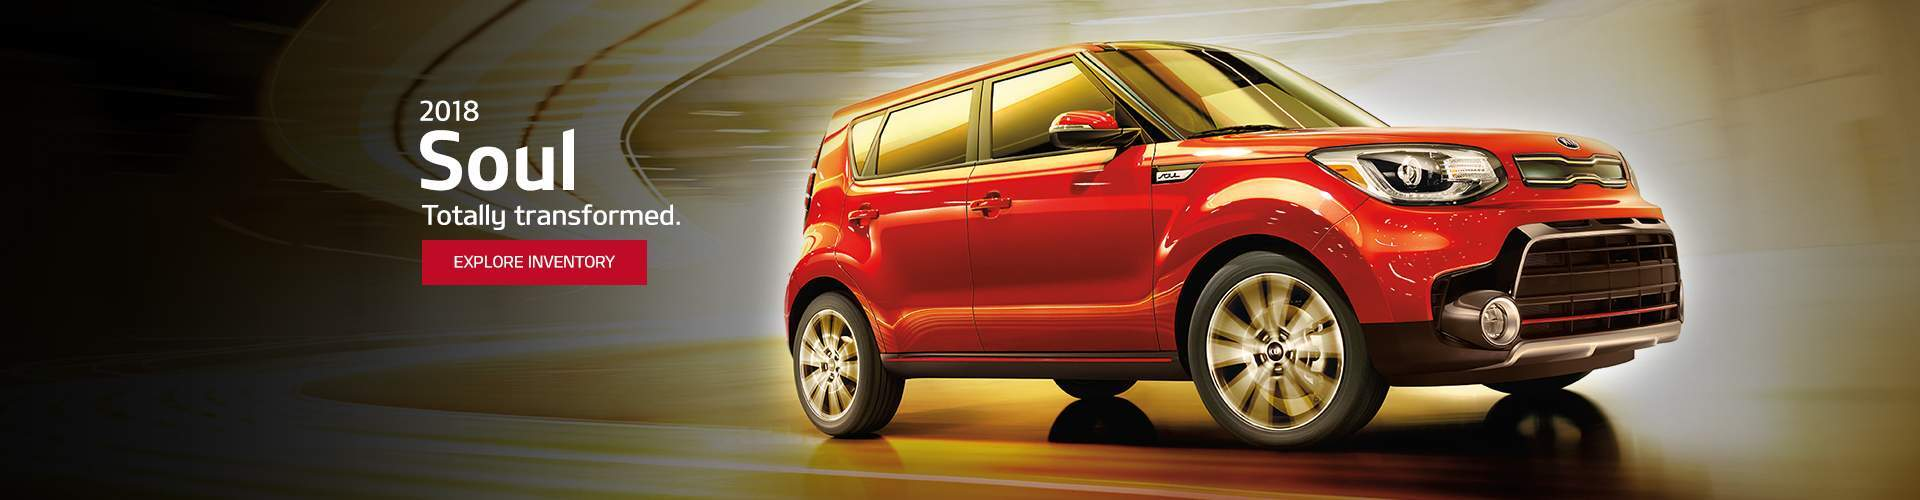 New Kia Soul at Courtesy Kia